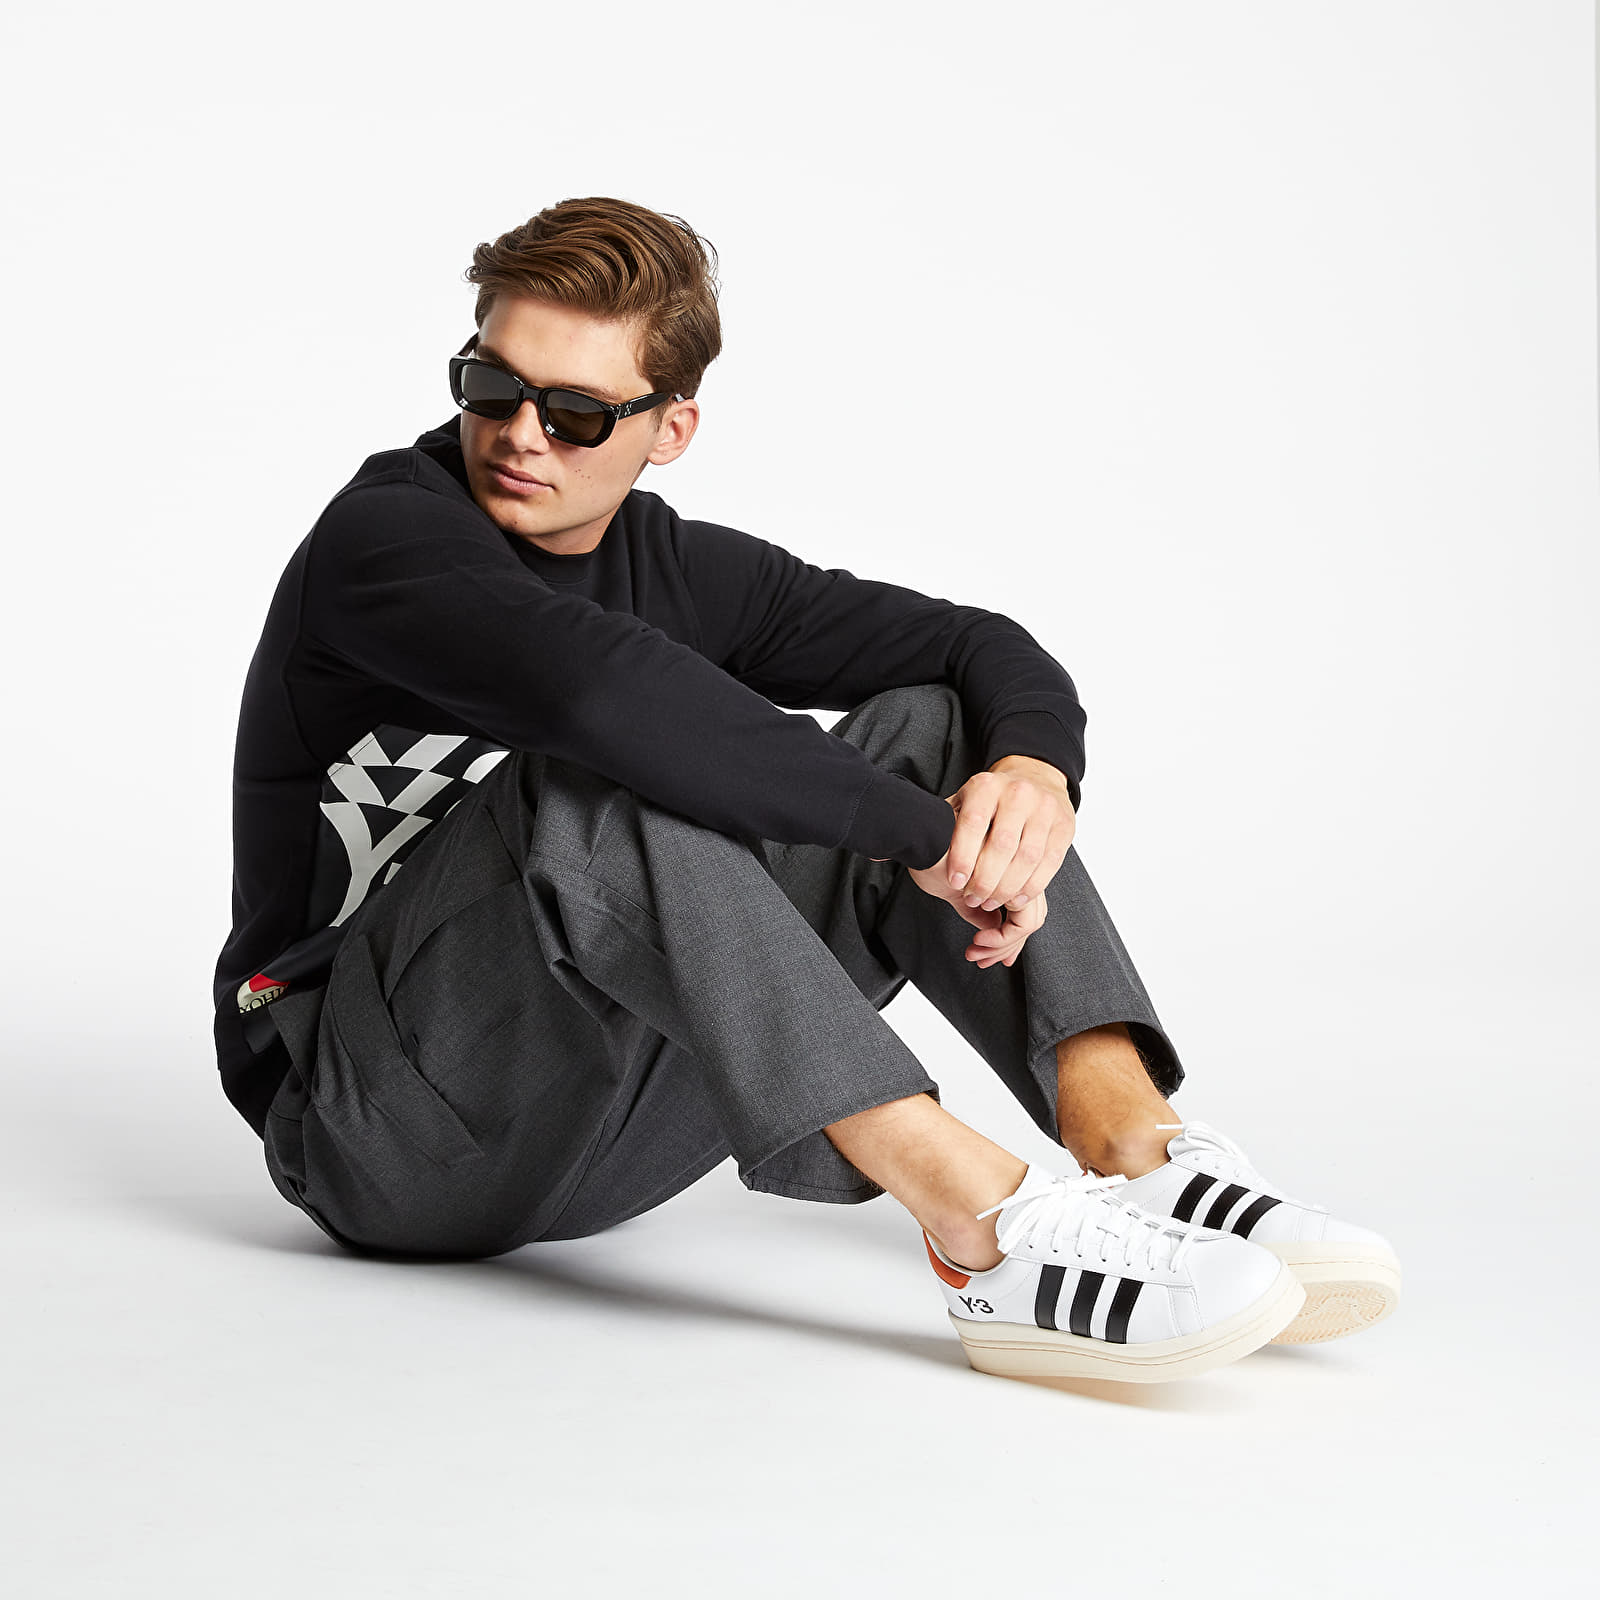 Sweatshirts Y-3 Ch1 Graphic Crewneck Black